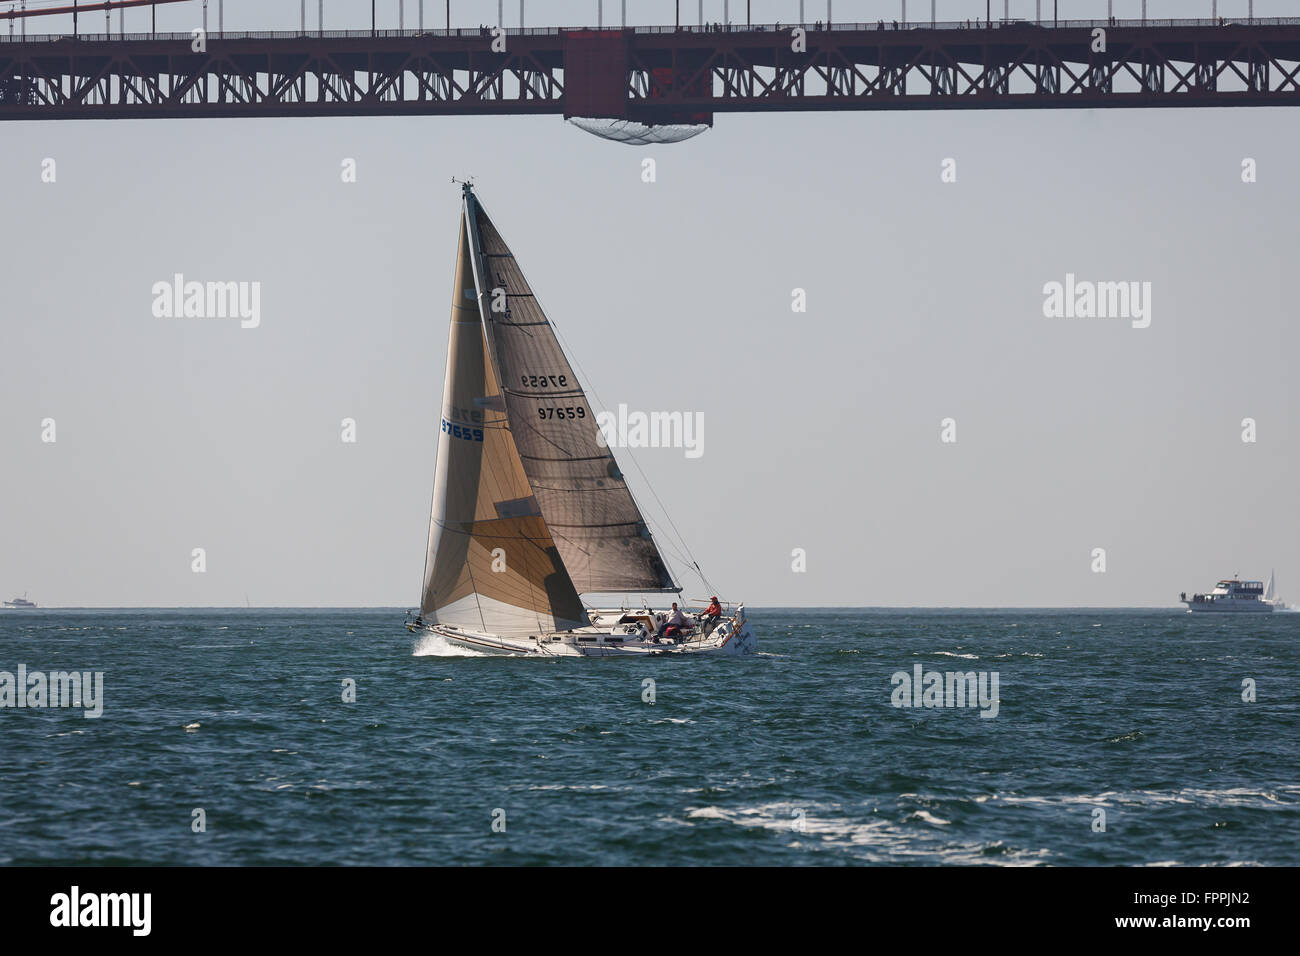 sailboat sails swiftly by the San Francisco Golden Gate Bridge - Stock Image